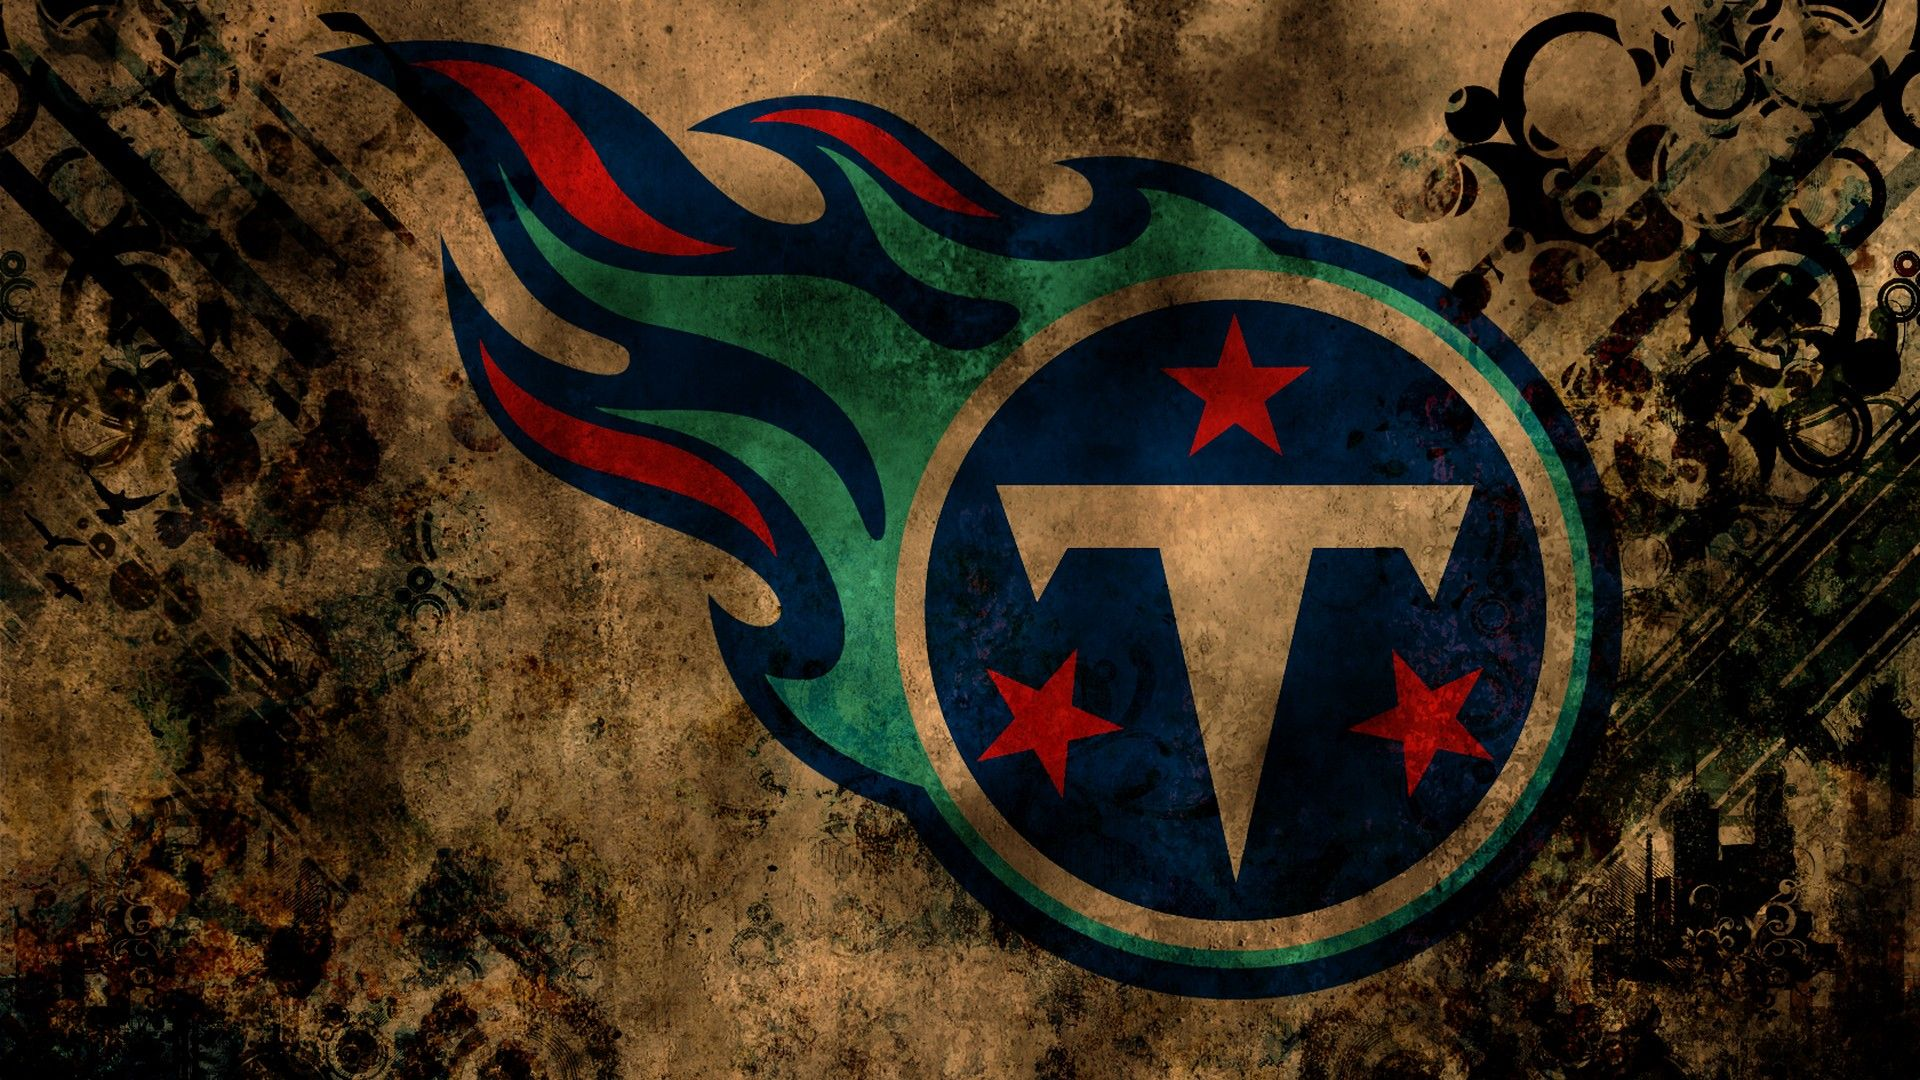 Tennessee Titans Hd Wallpapers 2021 Nfl Football Wallpapers Tennessee Titans Wallpaper Tennessee Titans Nfl Football Wallpaper